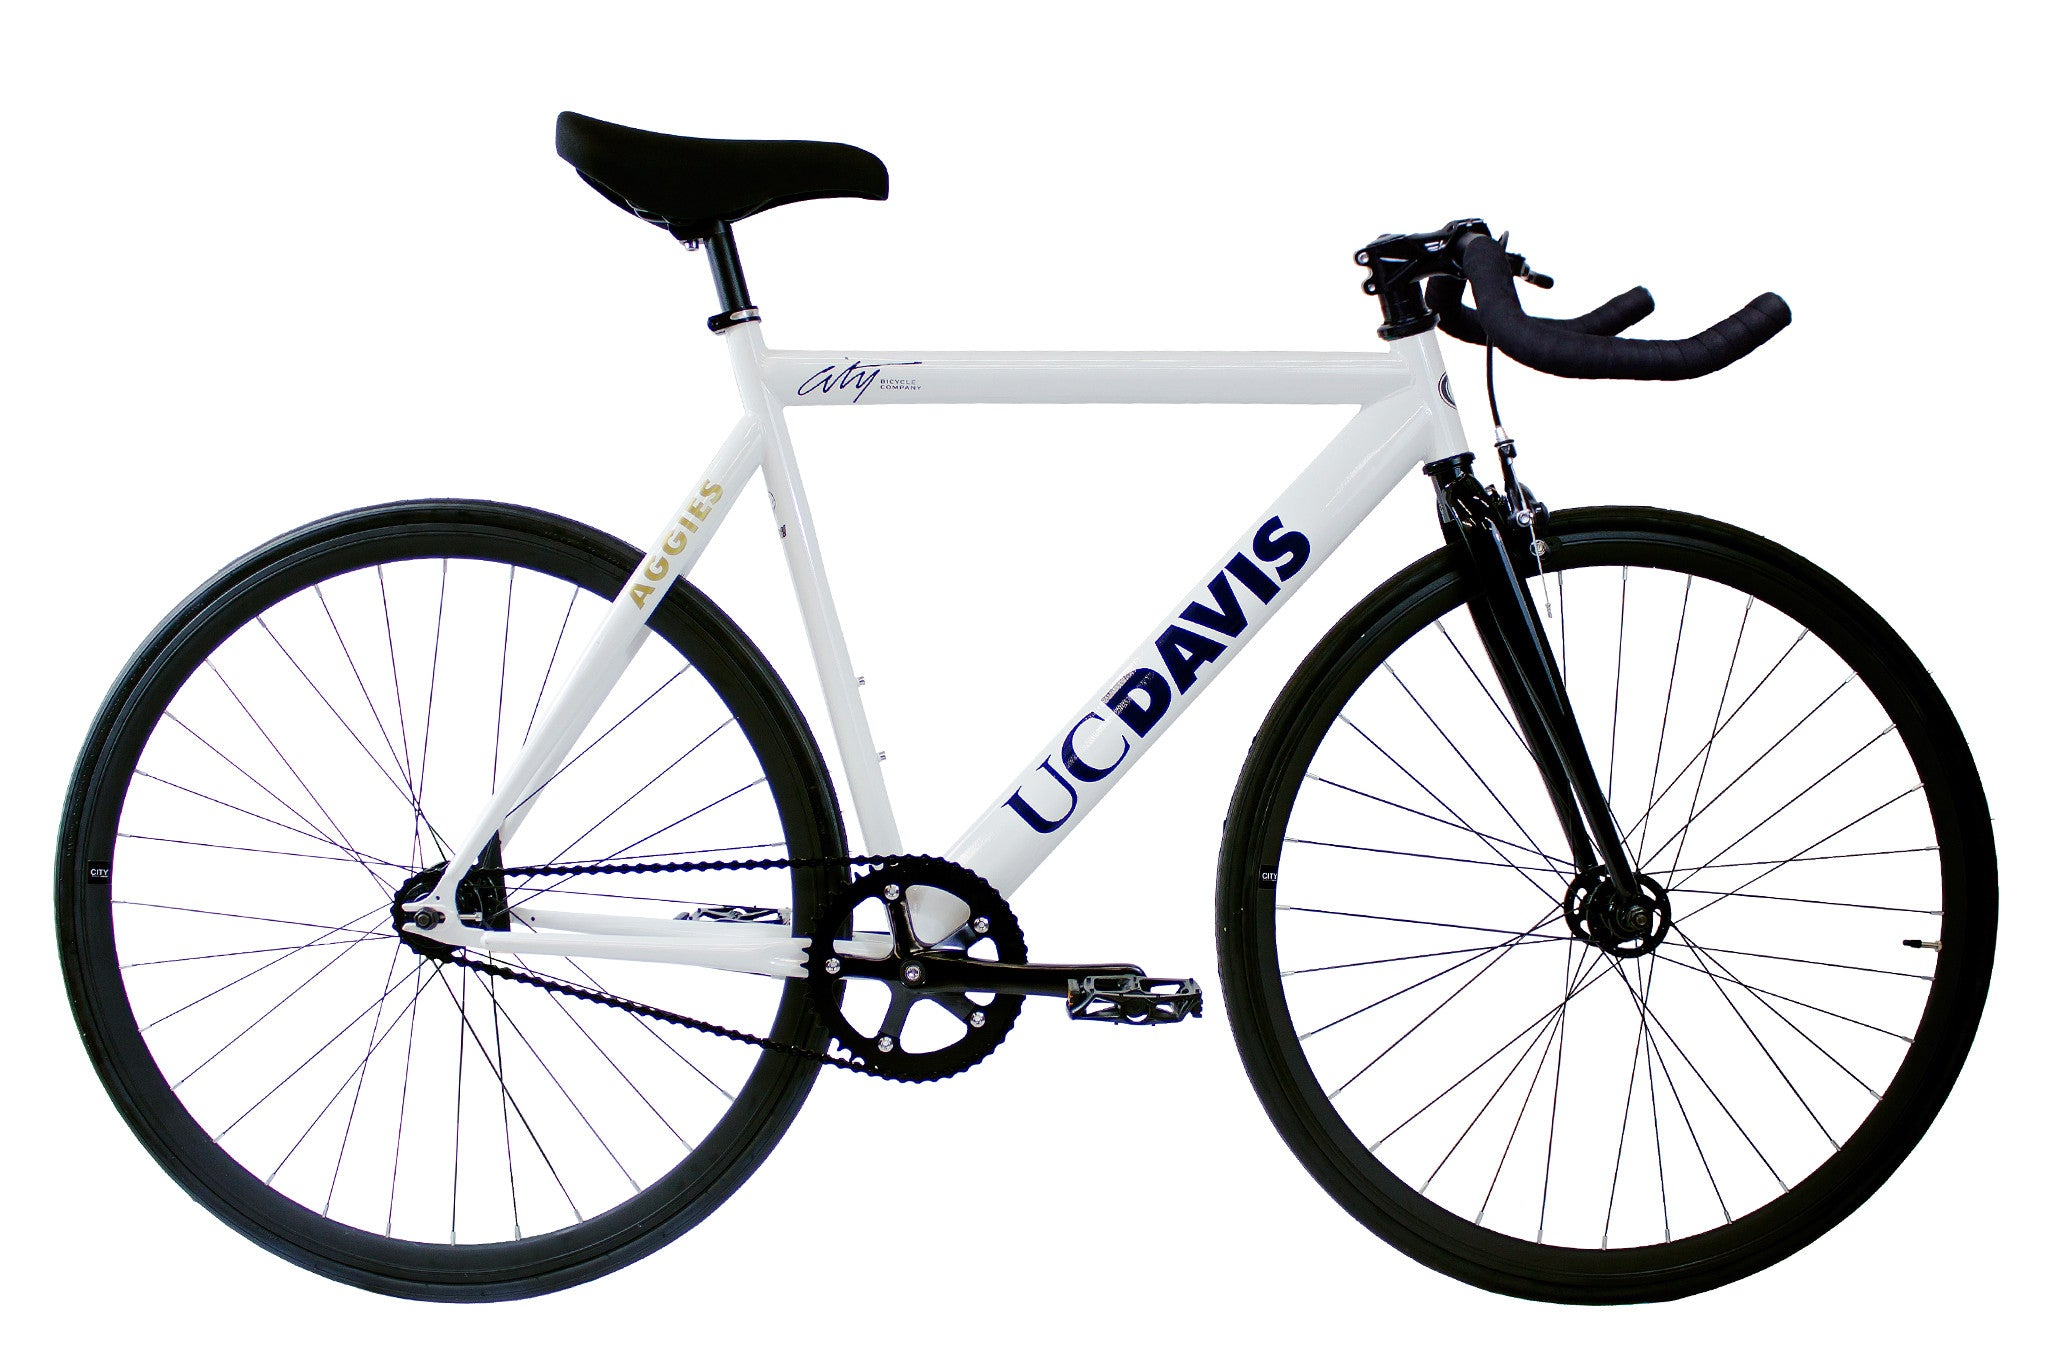 UCD Type 001 | City Bicycle Co. Fixed Gear